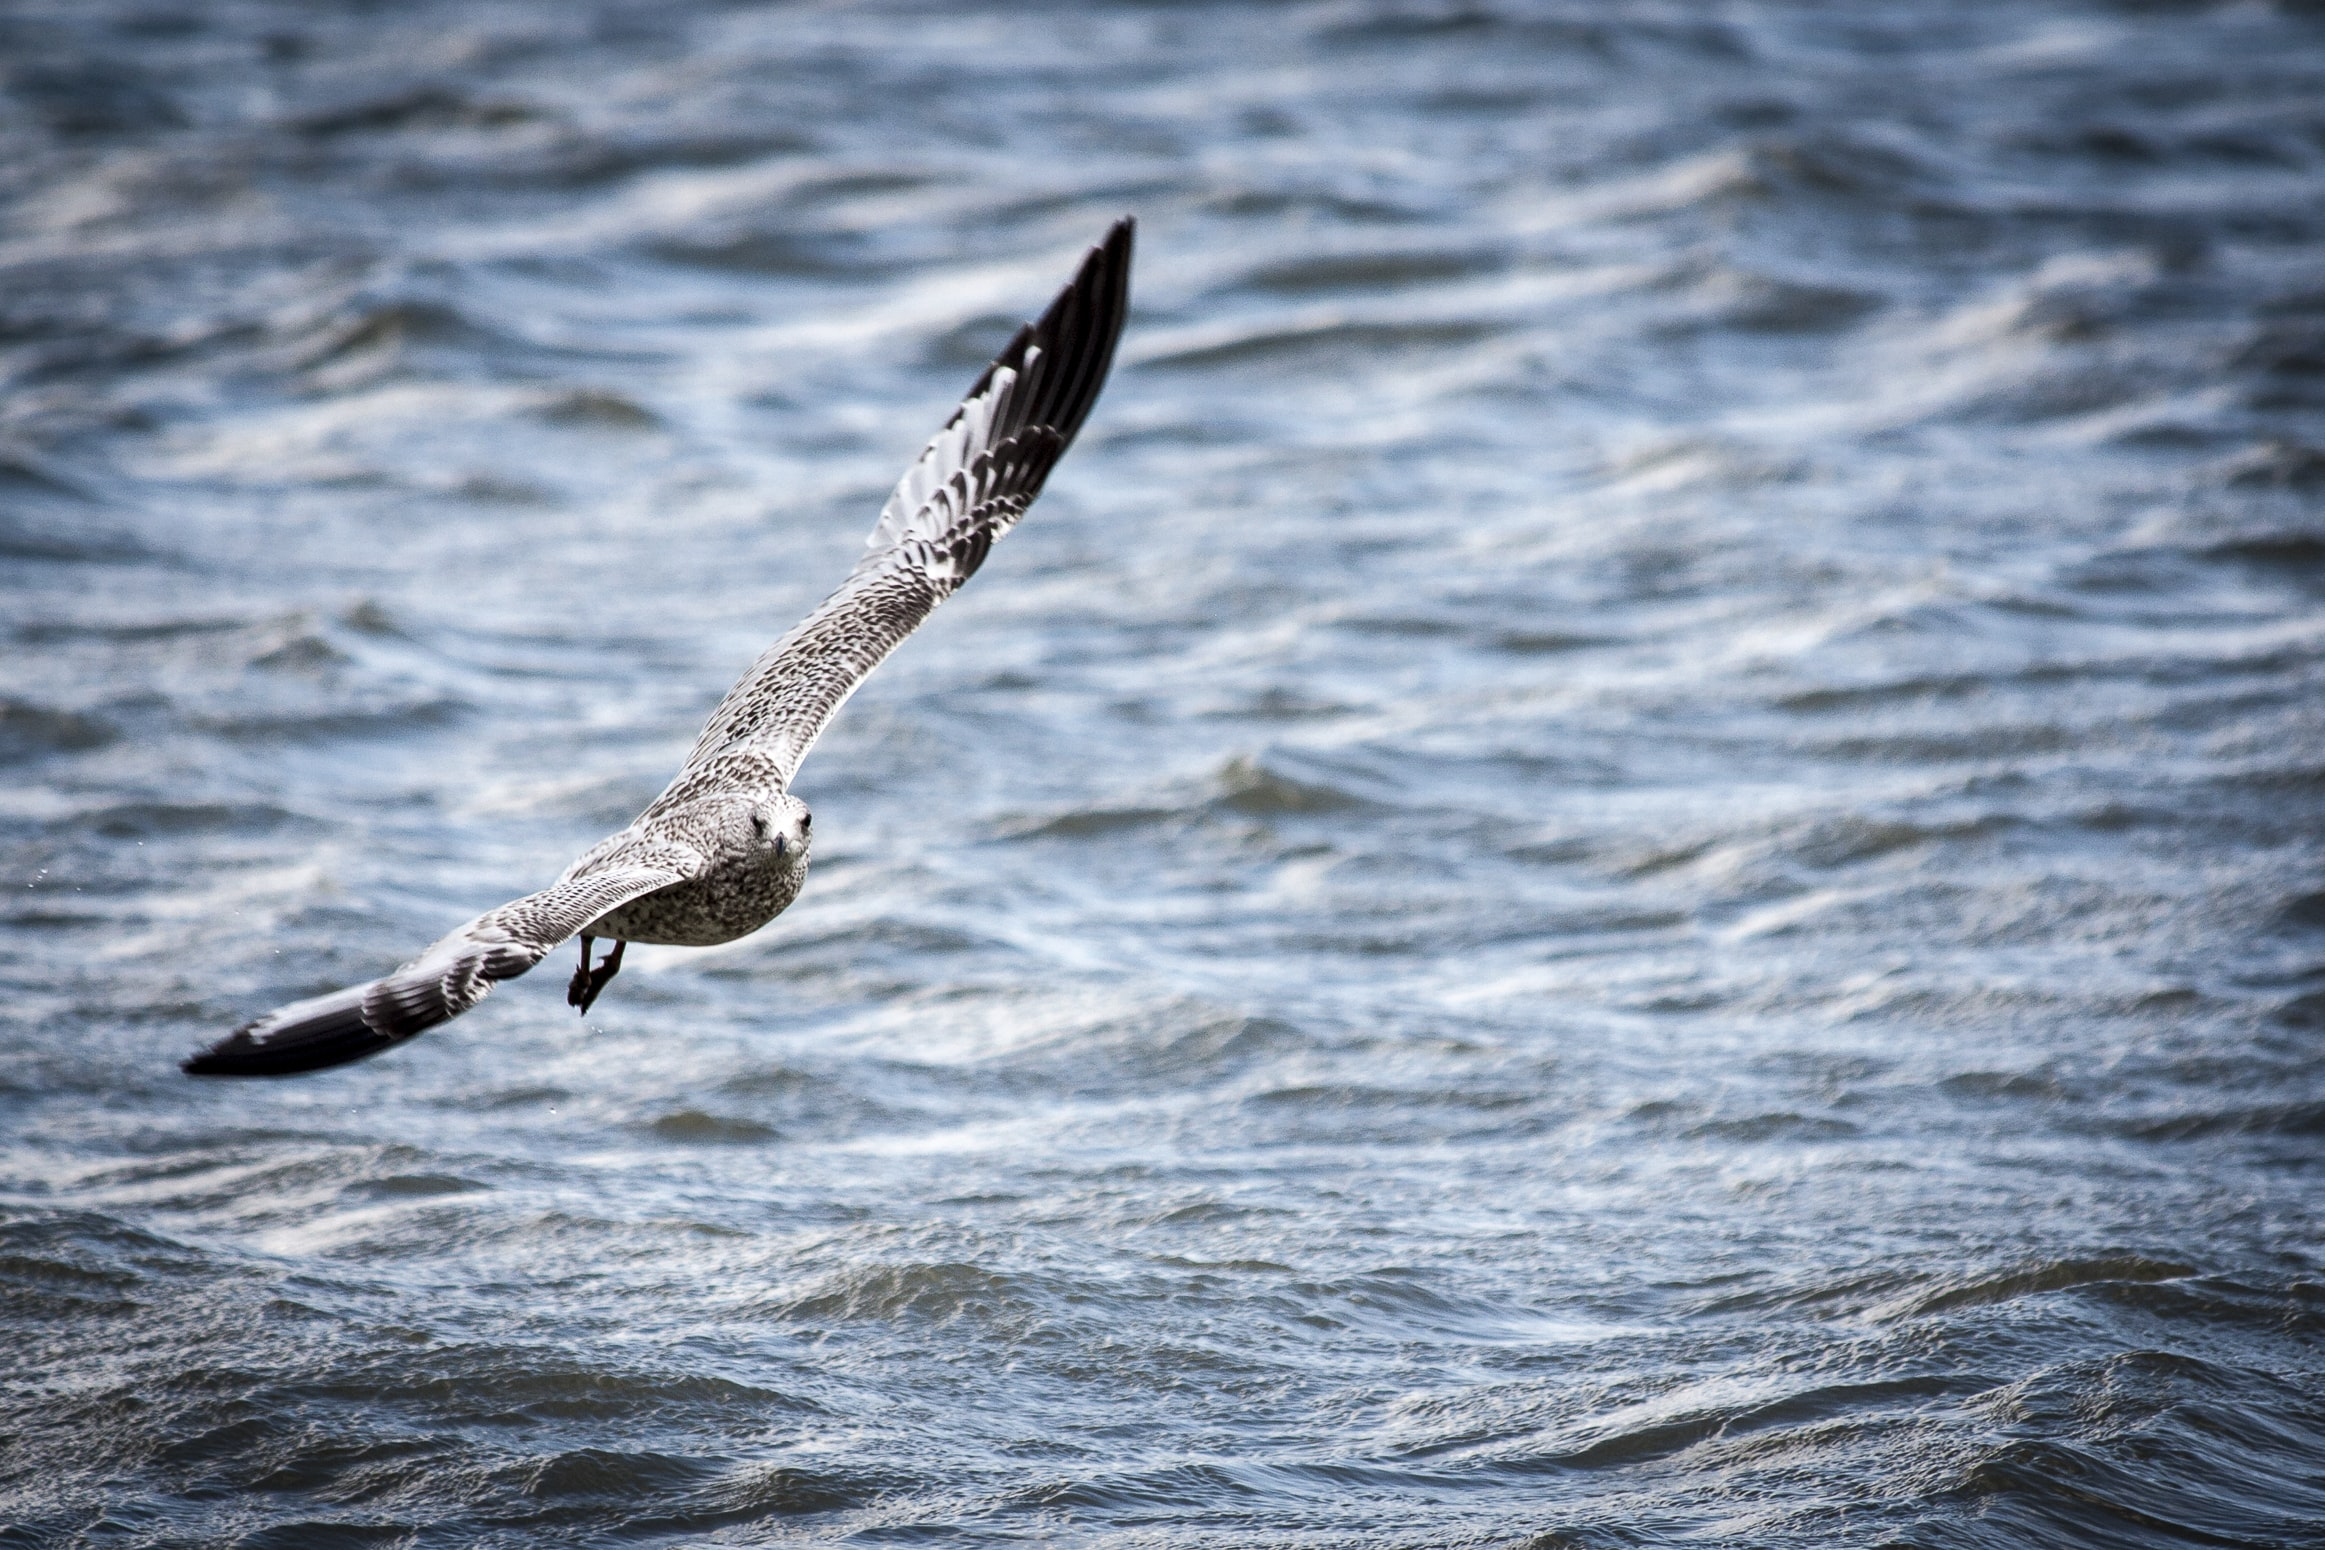 gray and black bird flying over body of water during daytime